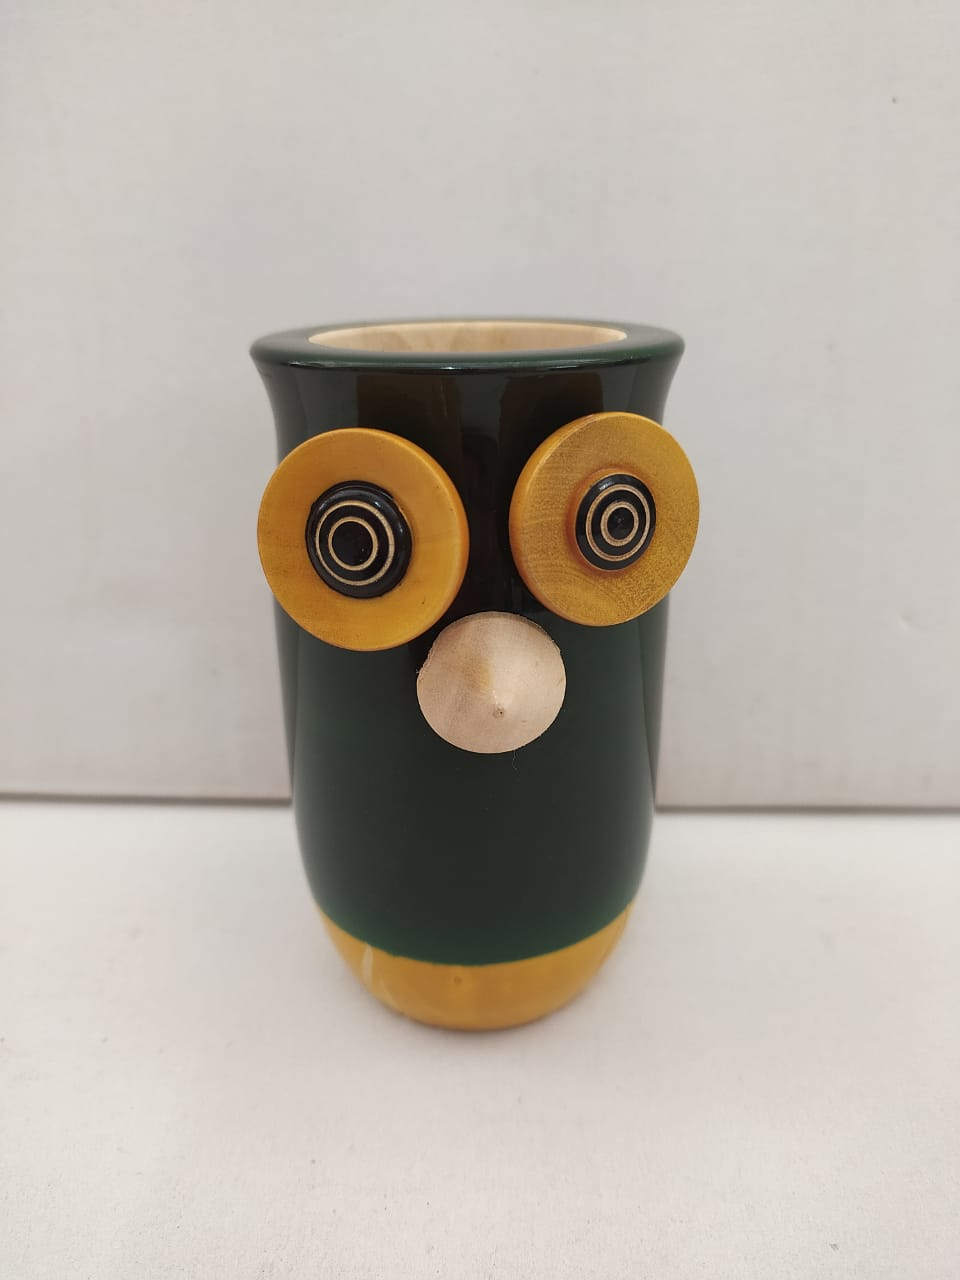 Buy Owl Pen Stand Chennapattana Toys (SEA016)Online